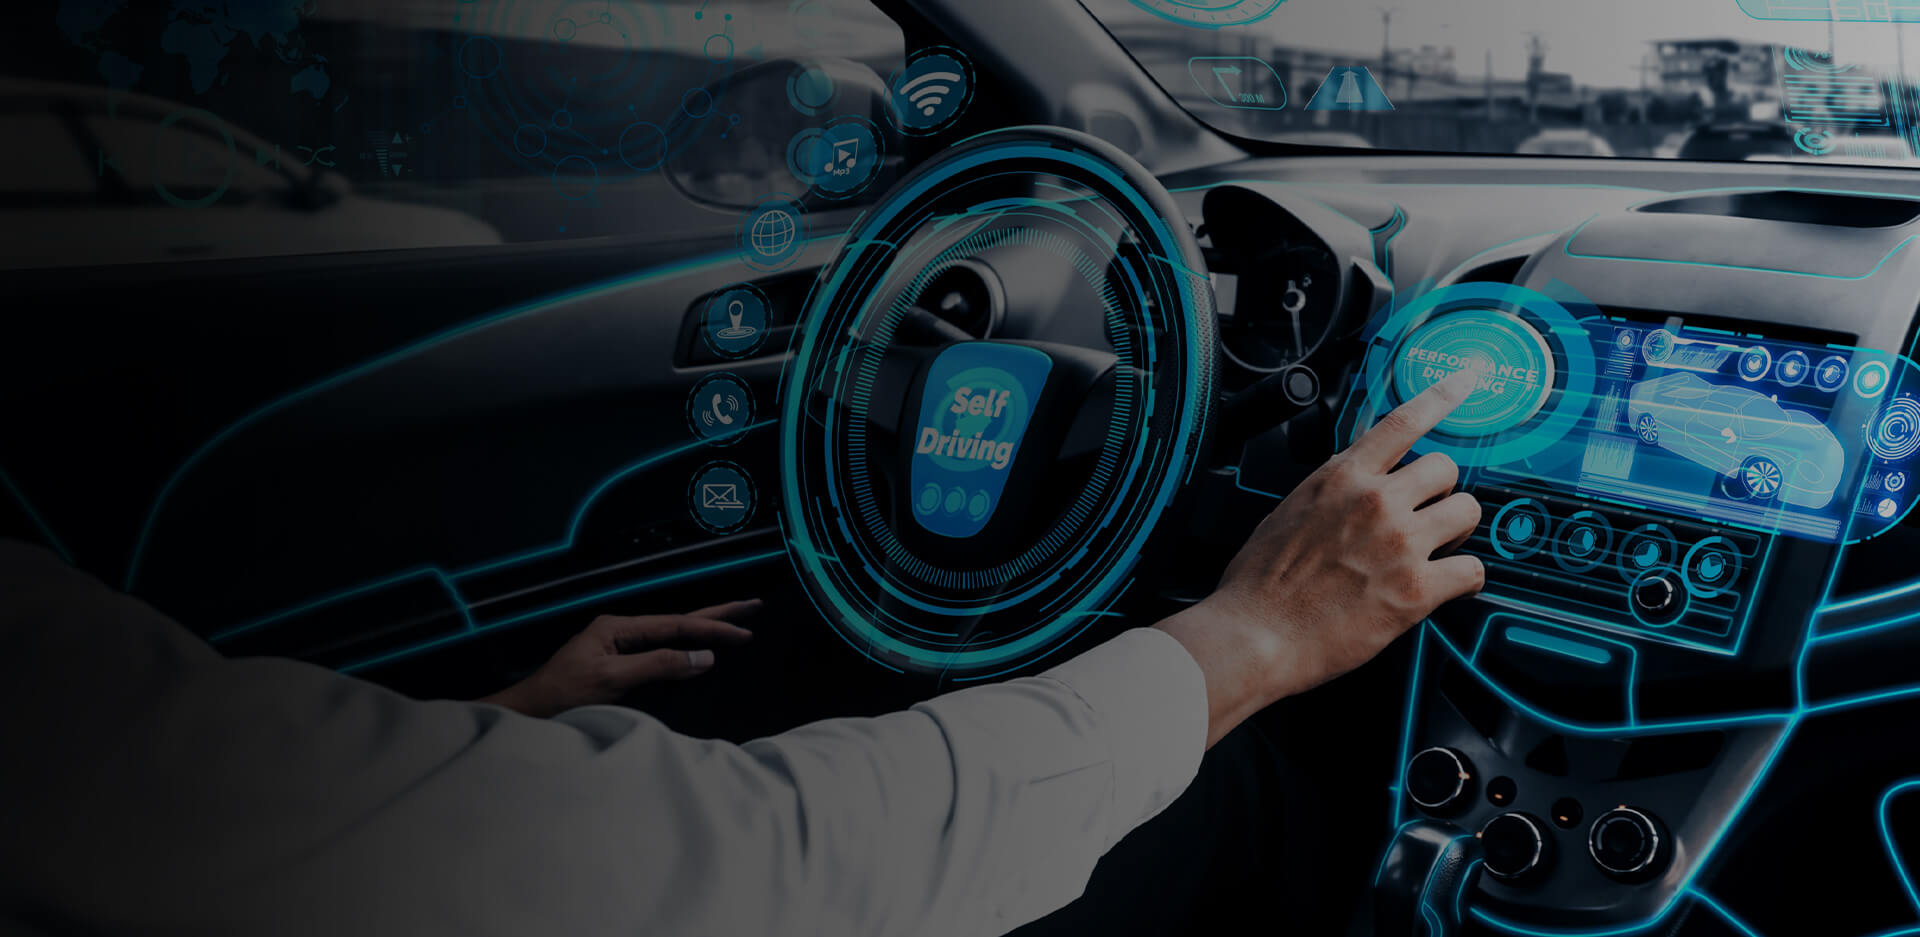 Smart connected car app offers innovative services to drivers while keeping them safe